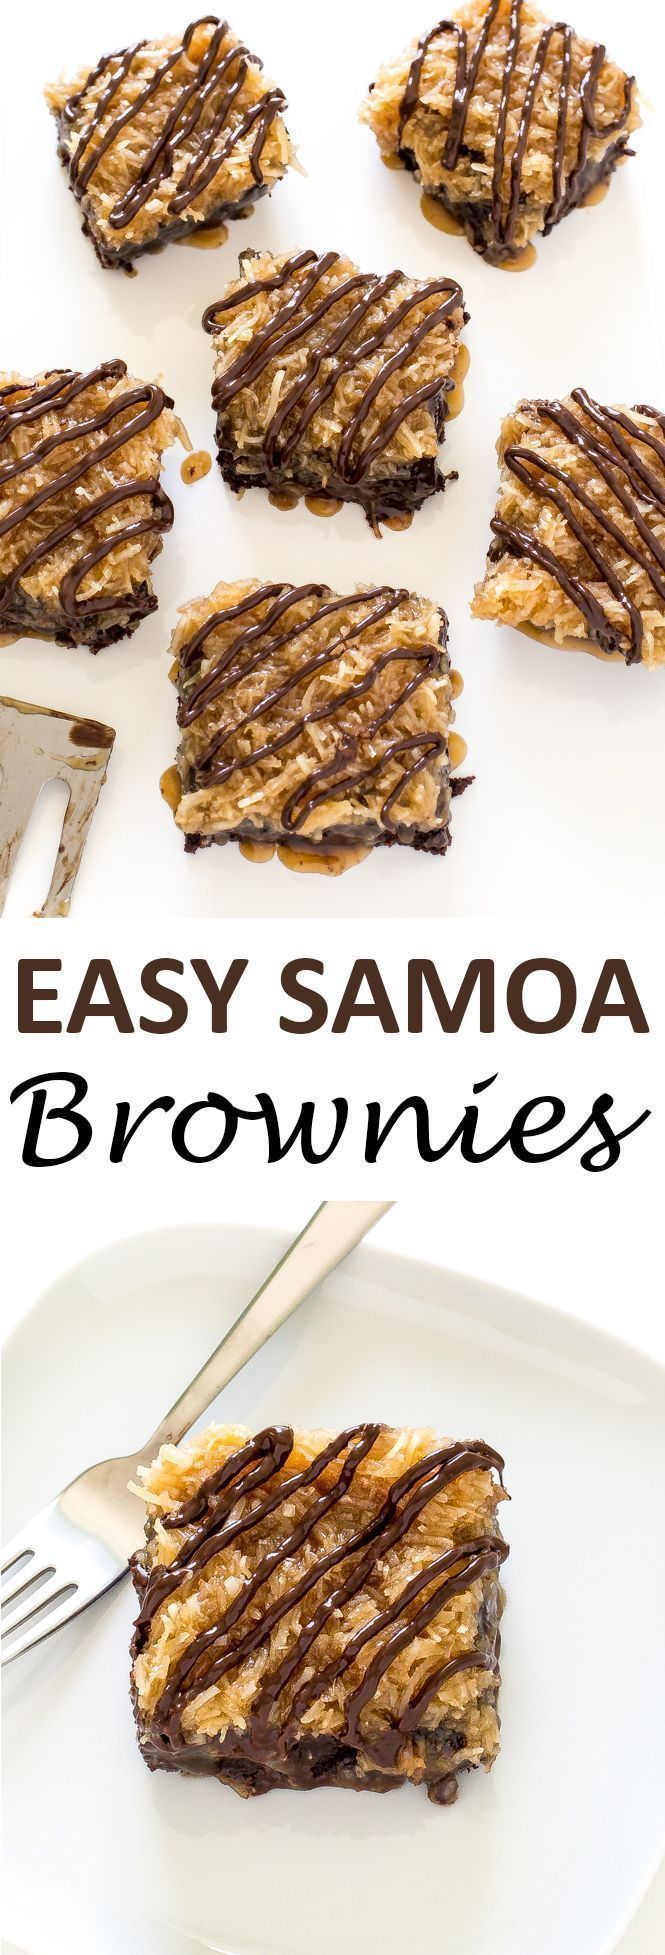 Rich and chocolatey Samoa Brownies topped with a sweet coconut topping. They taste just like the Samoa Cookie you love! | chefsavvy.com #recipe #chocolate #dessert #samoa #brownies #coconut